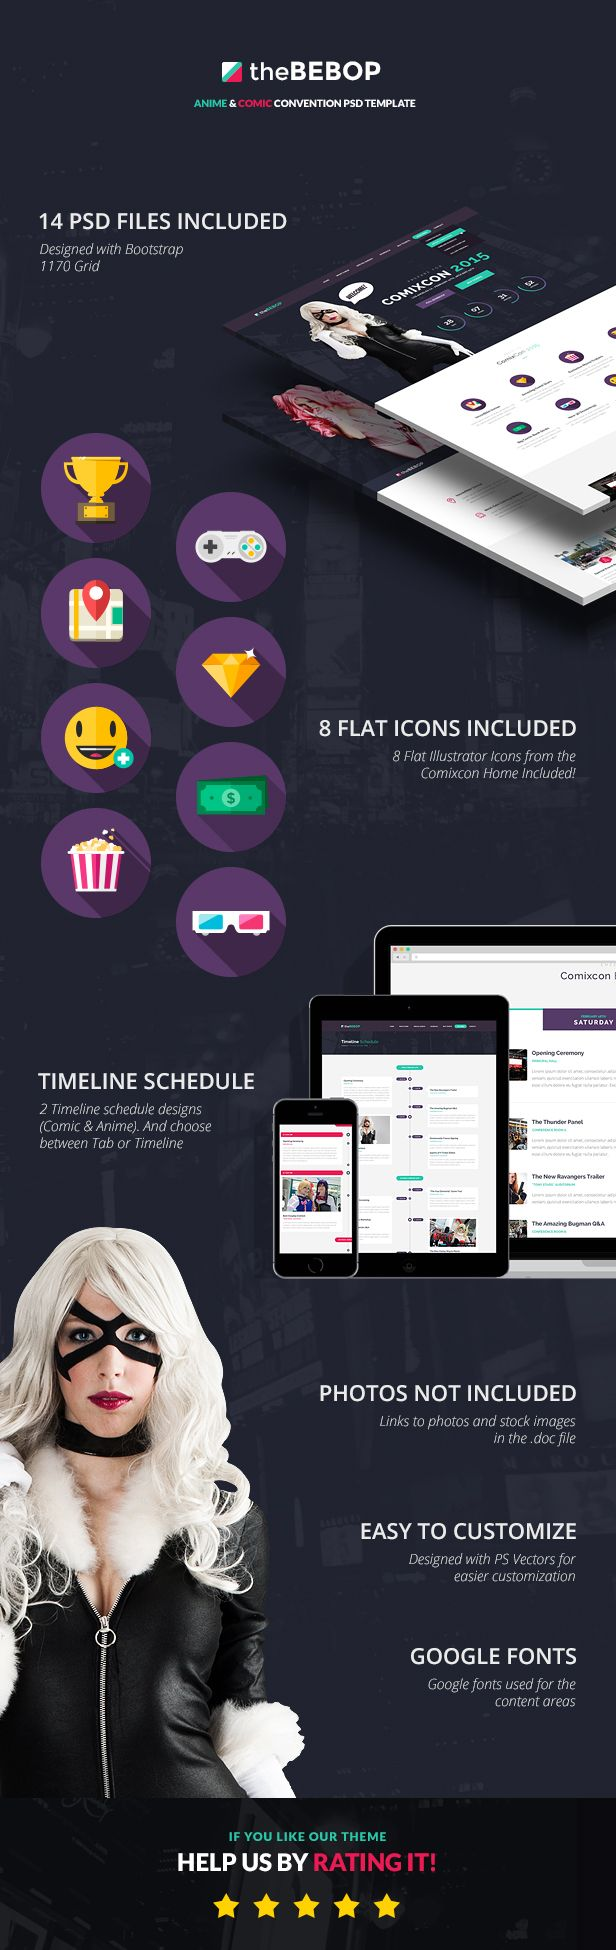 The Bebop Anime and Comic Convention PSD Template - 7